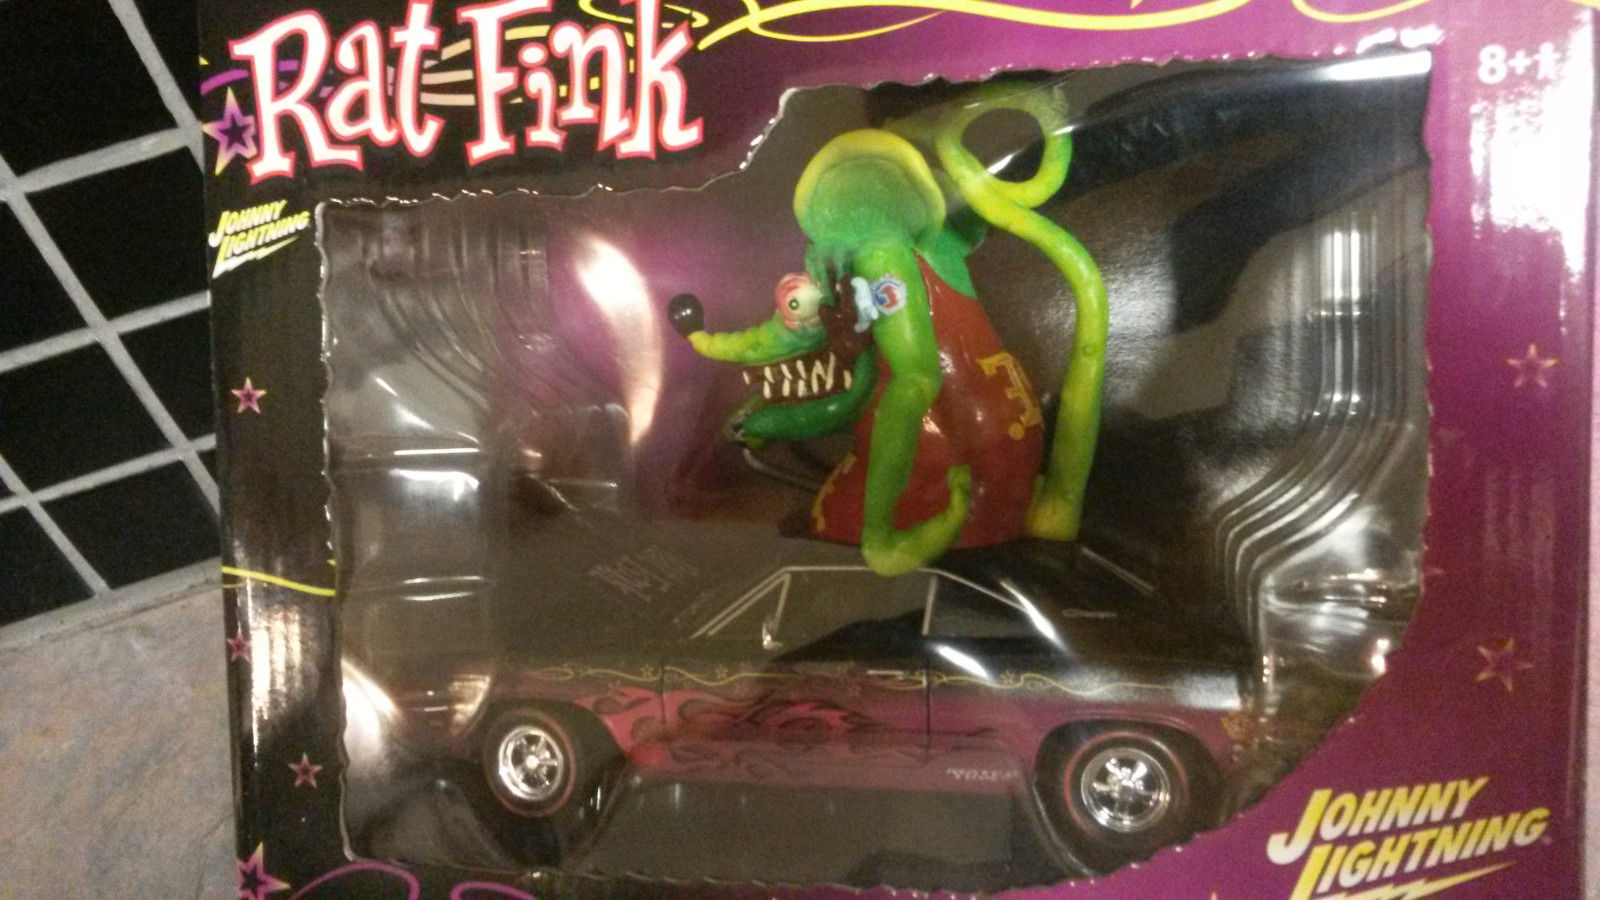 2017 Dodge Charger >> Used Matco Tools Ed Roth Rat Fink 1:24 Diecast 1969 Dodge ...